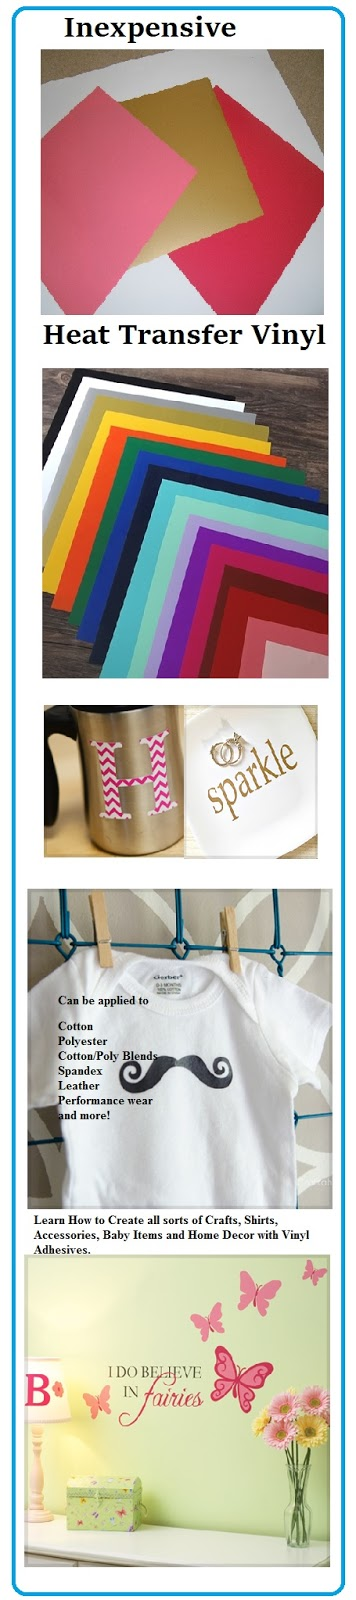 Affordable Crafts Ideas with Vinyl Transfers